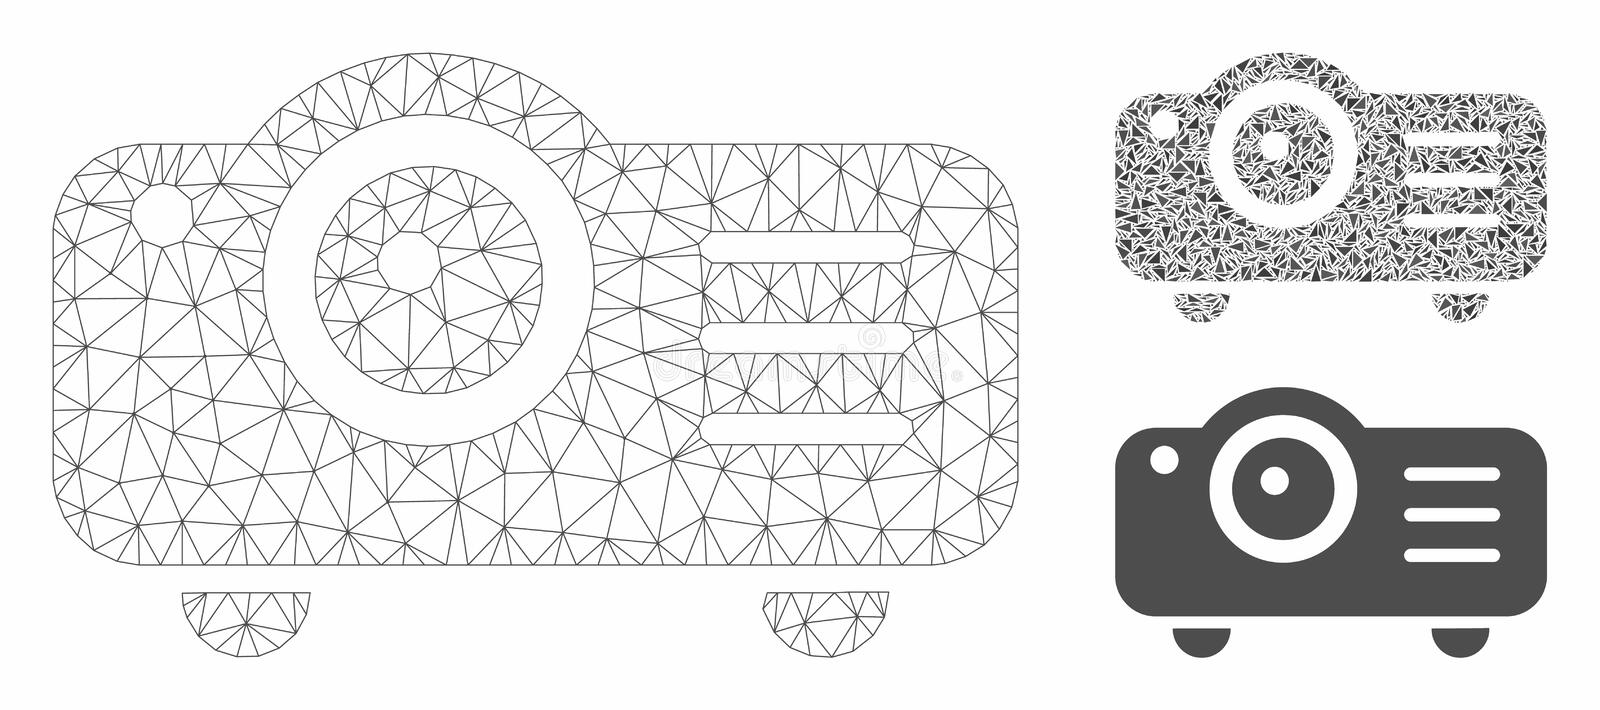 Projector Vector Mesh Carcass Model and Triangle Mosaic Icon. Mesh projector model with triangle mosaic icon. Wire carcass triangular mesh of projector. Vector stock illustration